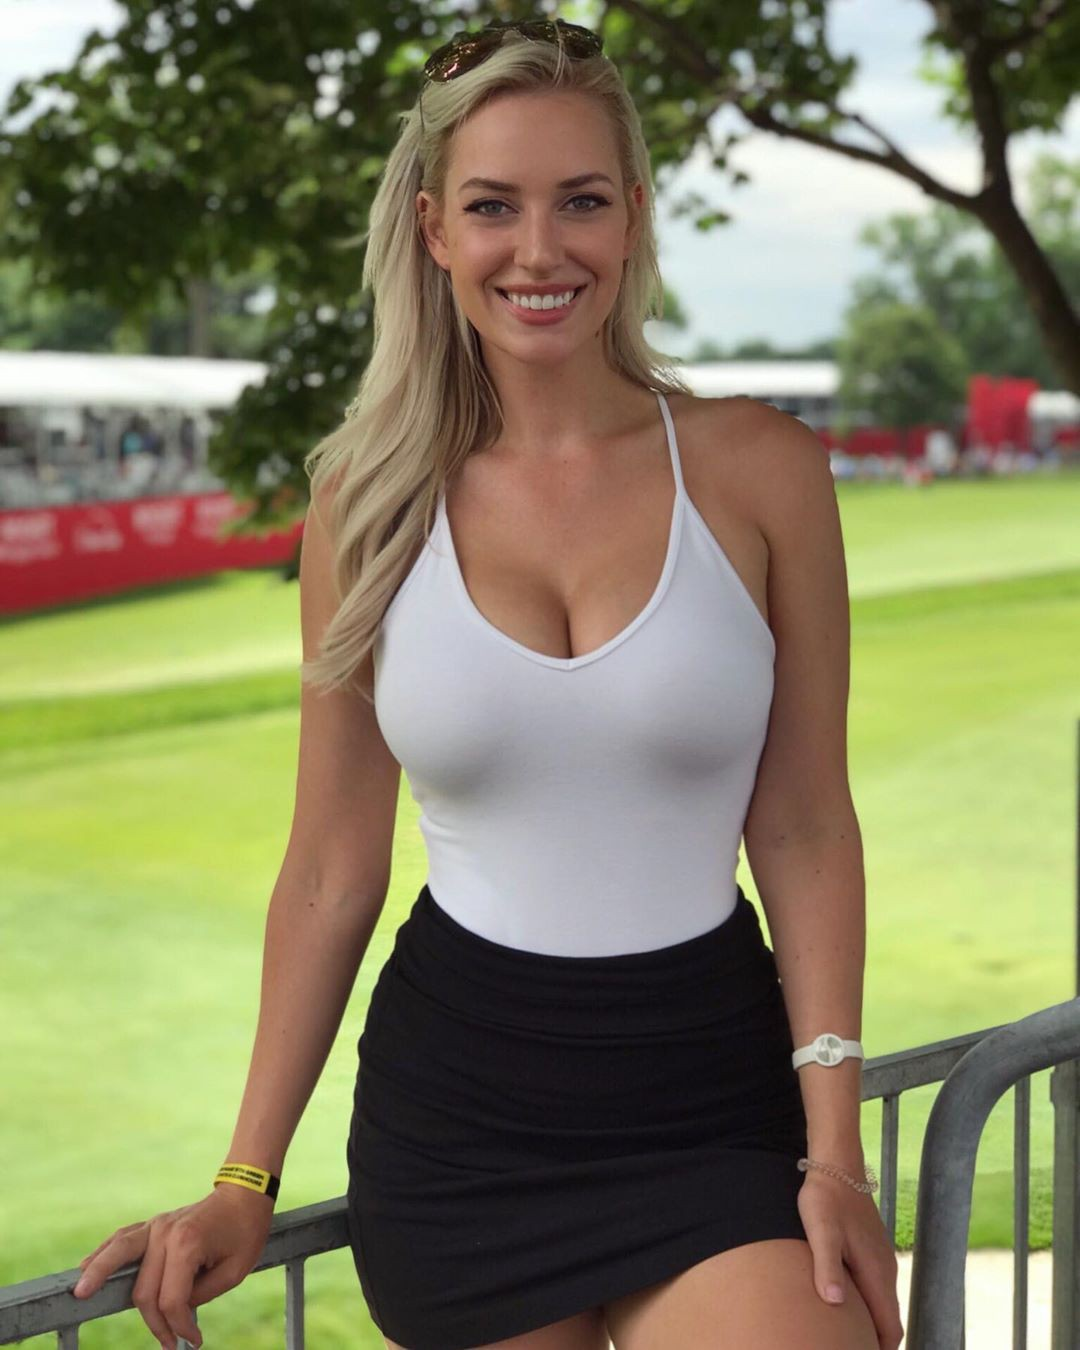 French style paige spiranac hot